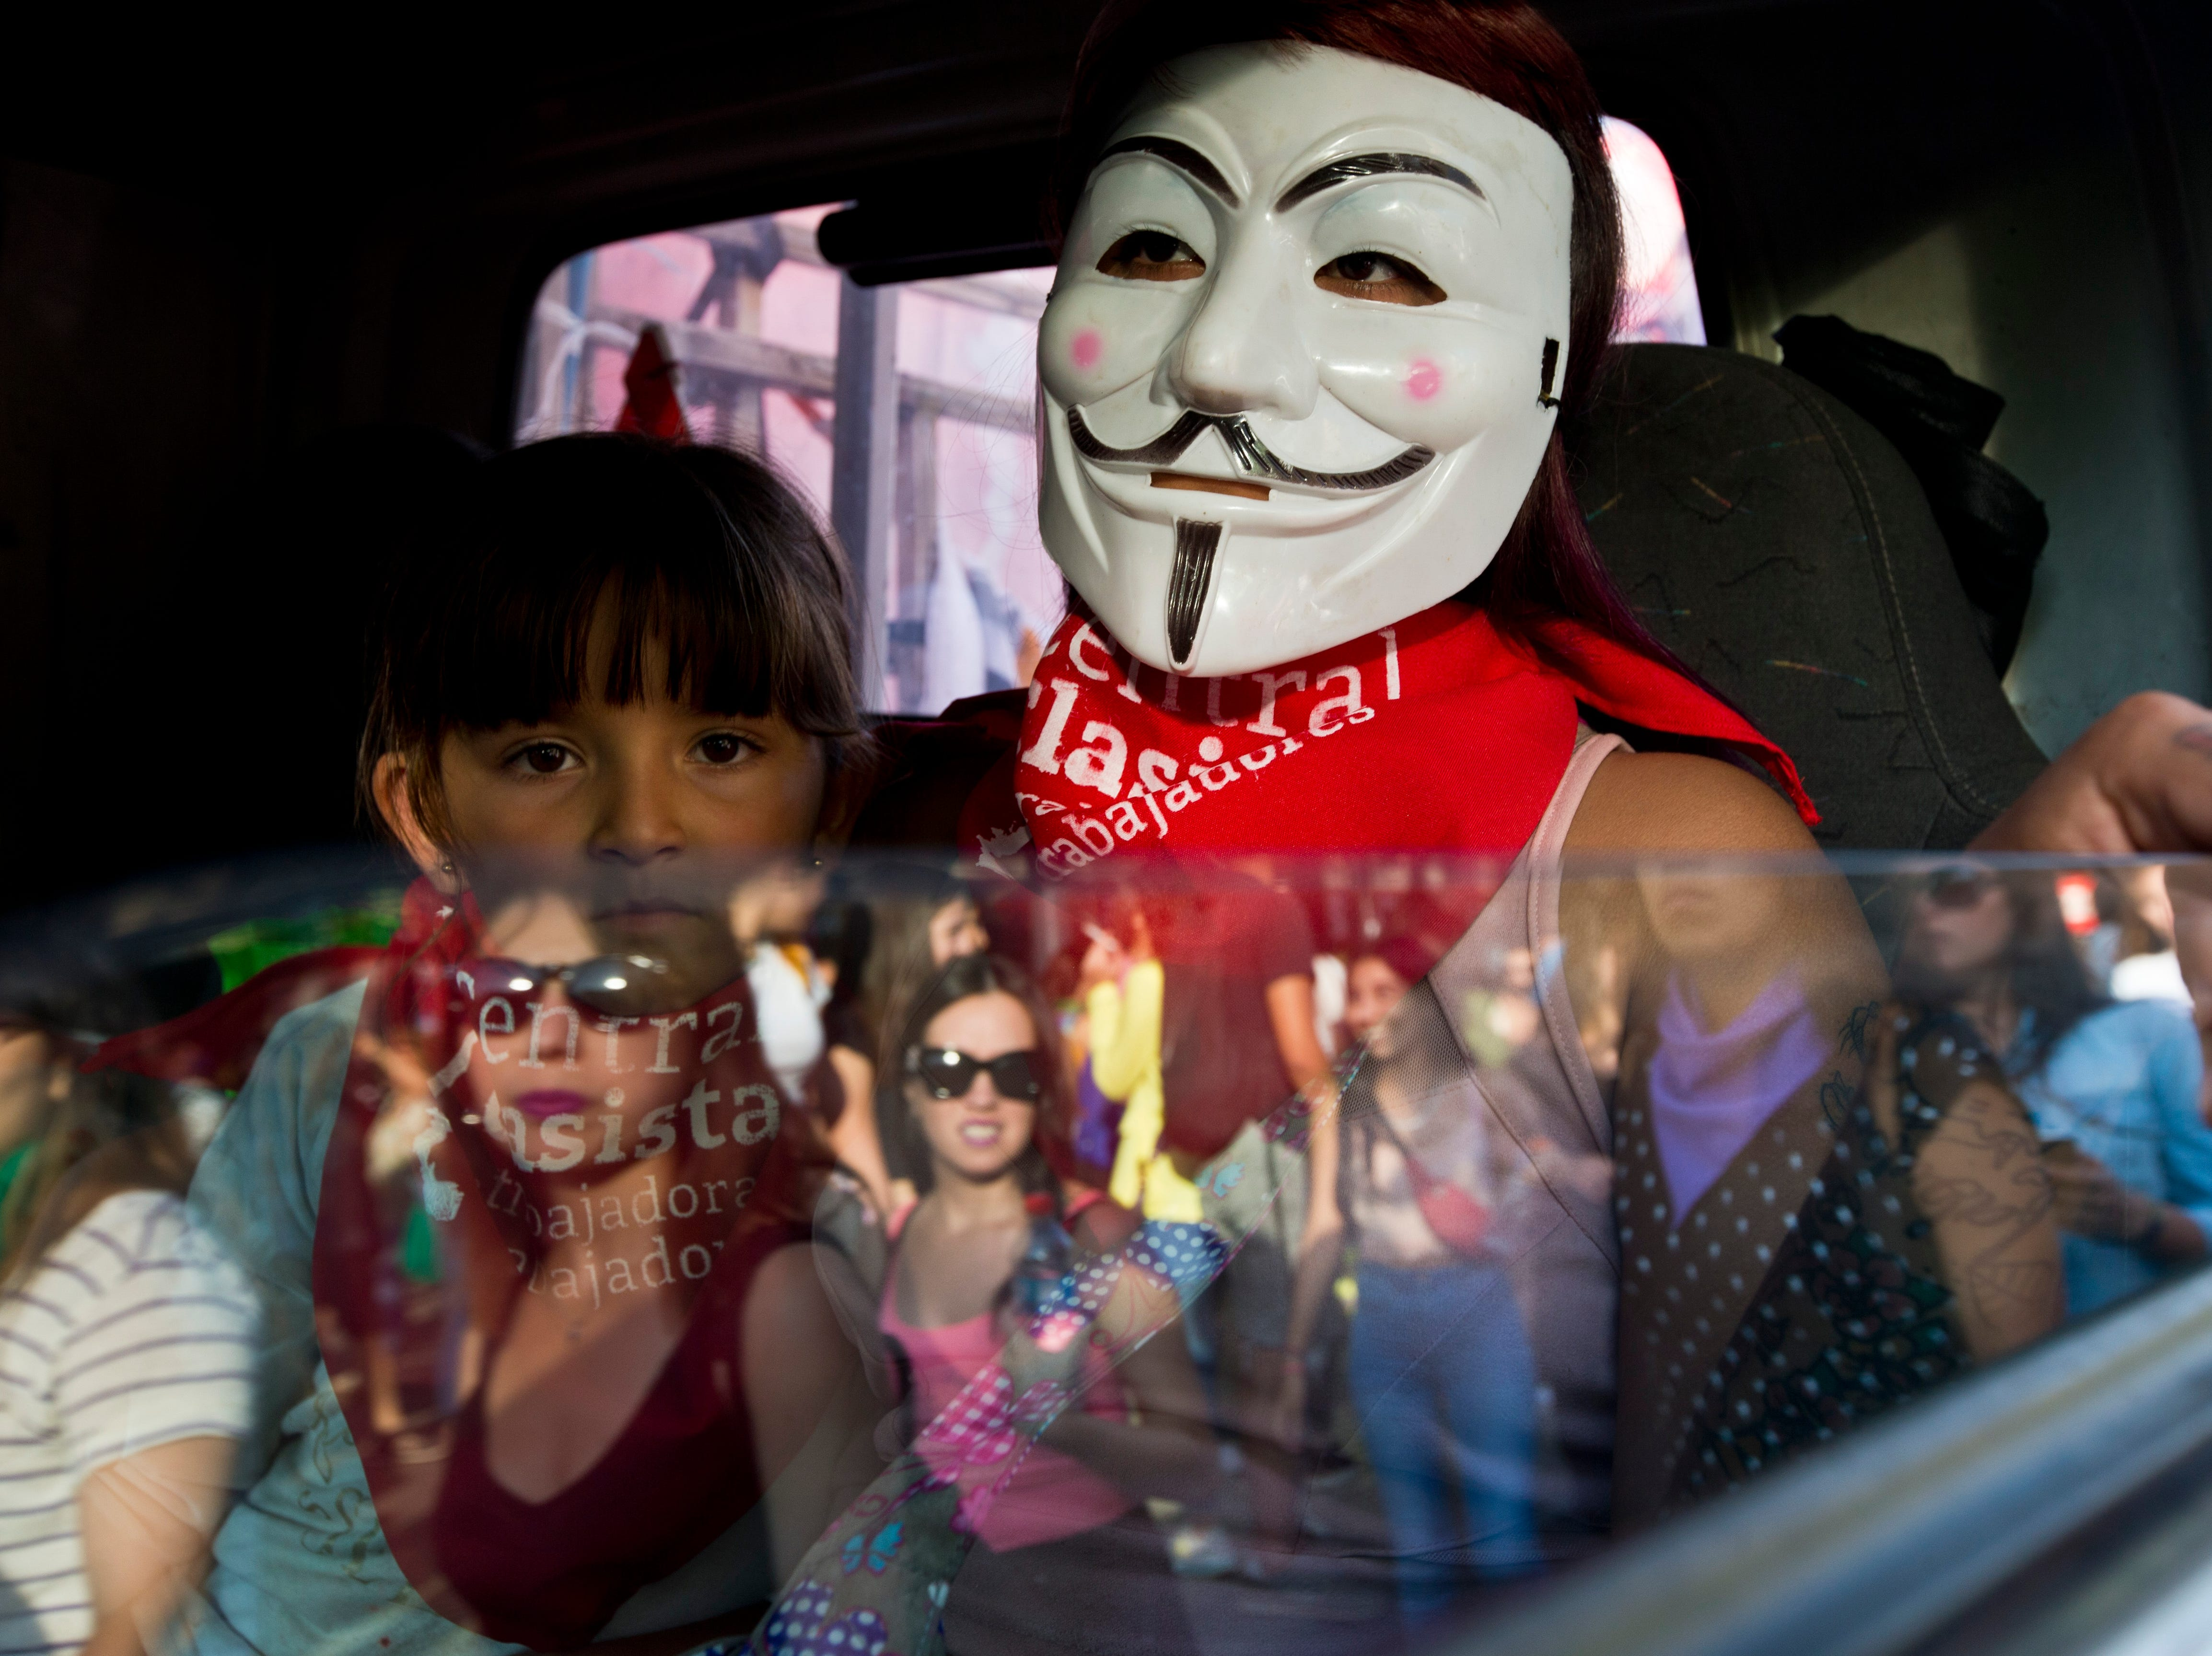 A woman wearing a mask and a girl ride inside a truck during a march marking International Women's Day in Santiago, Chile, Friday, March 8, 2019. The day has been sponsored by the United Nations since 1975 as millions of women around the world are demanding equality amid a persistent salary gap, violence and widespread inequality. (AP Photo/Esteban Felix)